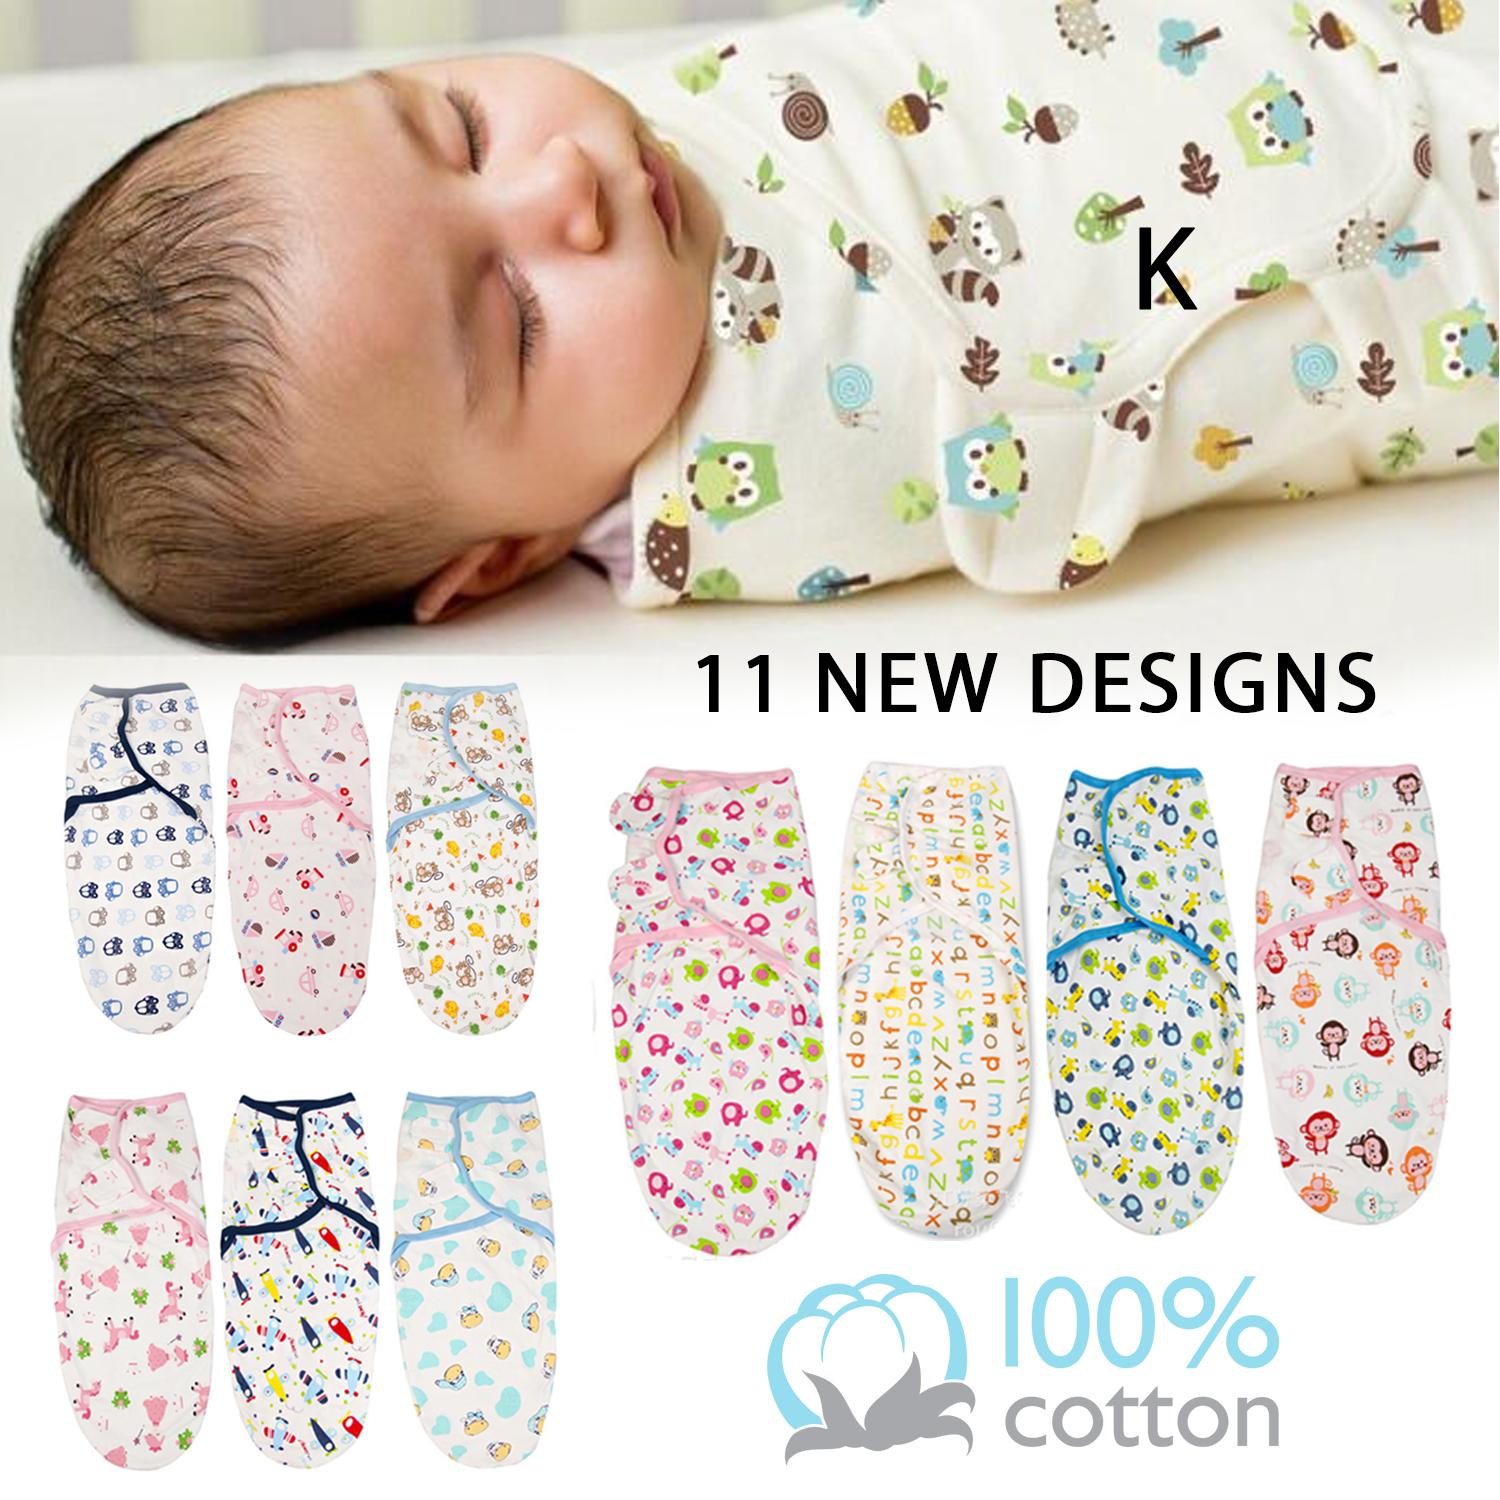 Baby Swaddle Blanket Baby Receiving Blanket Swaddle Me Wrap Cotton New Born Wrap New Born Clothing Baby Towel Baby Summer Wrap New Born Clothing By Enzo Fashion.